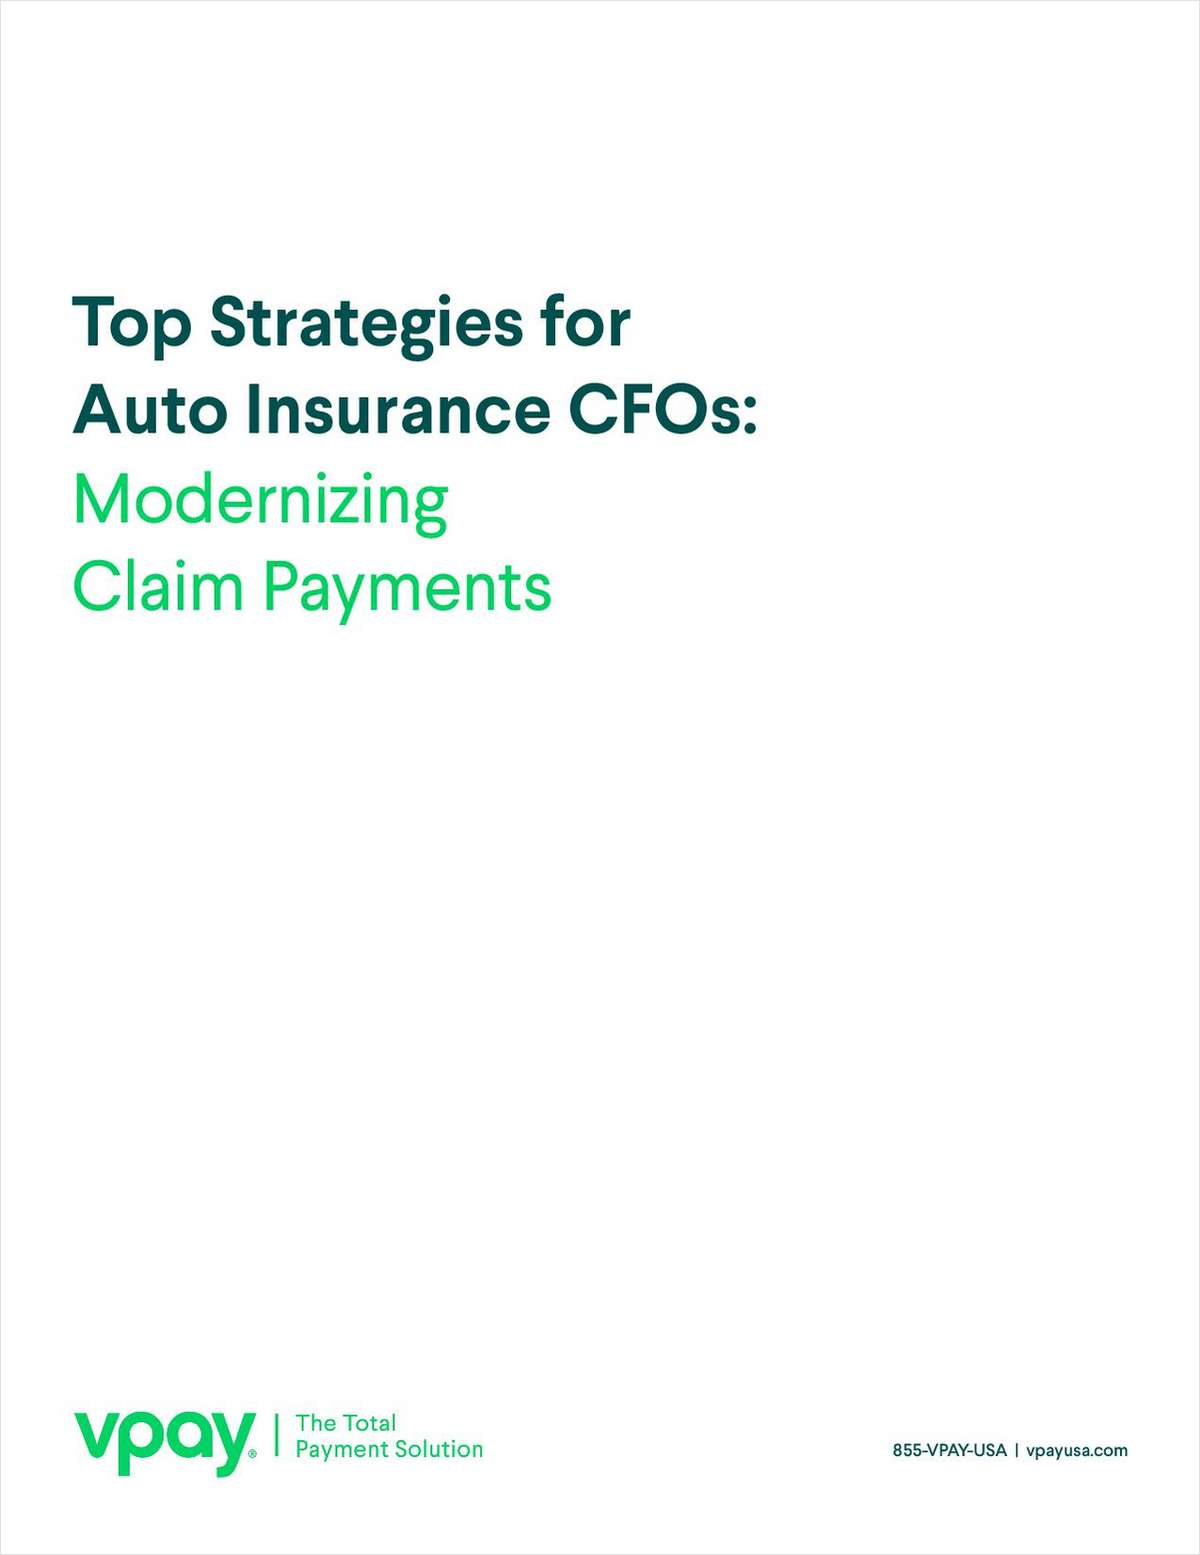 Top Strategies for Auto Insurance CFOs: Modernizing Claim Payments